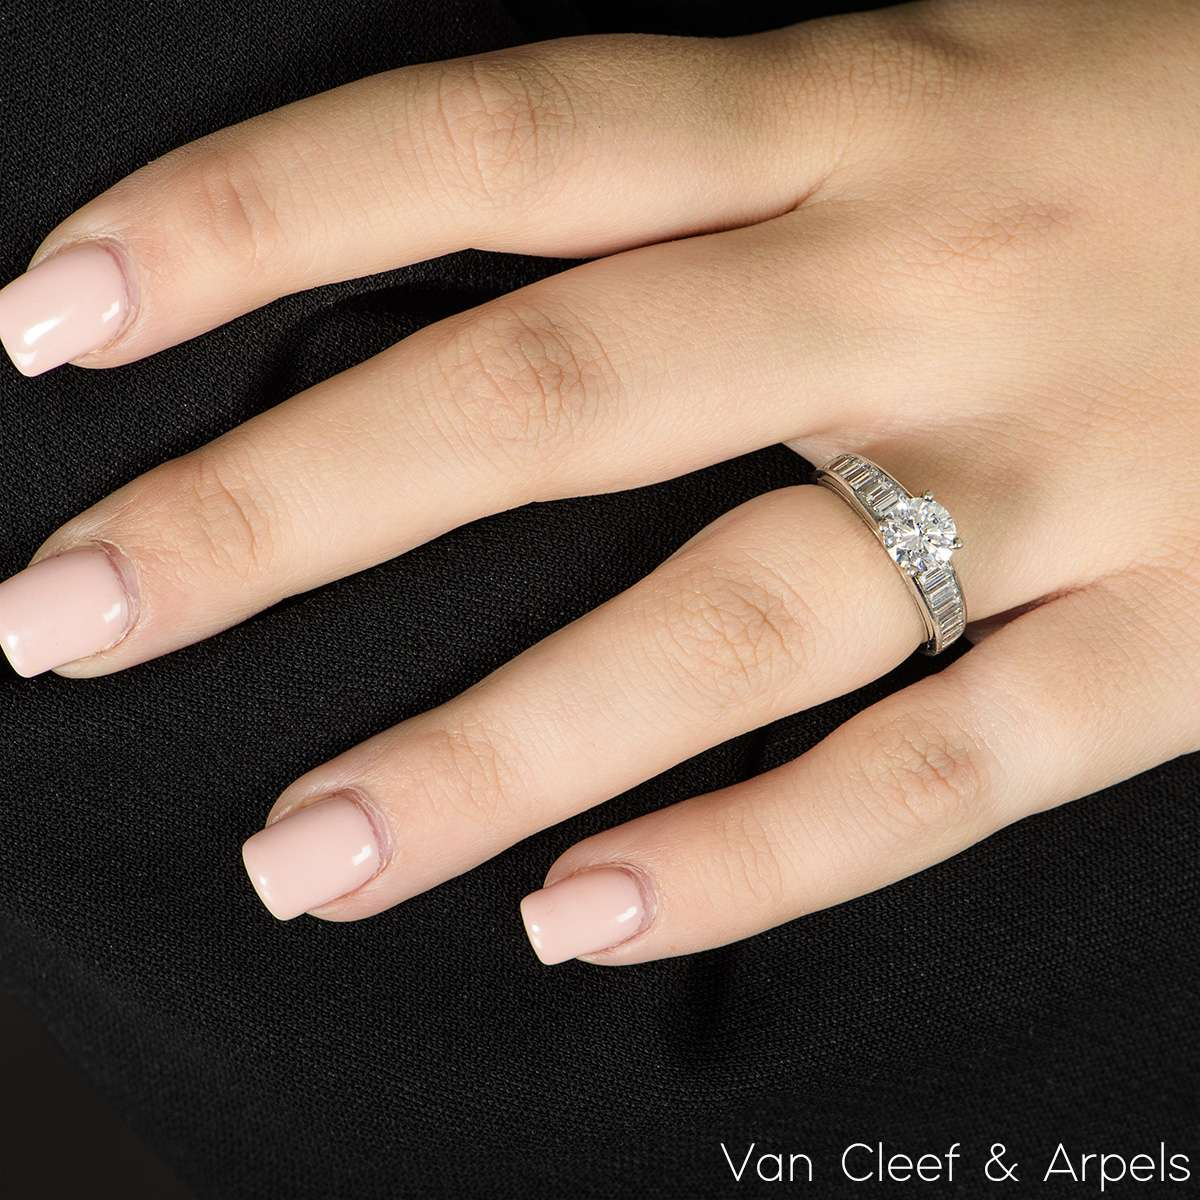 Van Cleef & Arpels Round Brilliant Cut Diamond Ring in Platinum 1.03ct